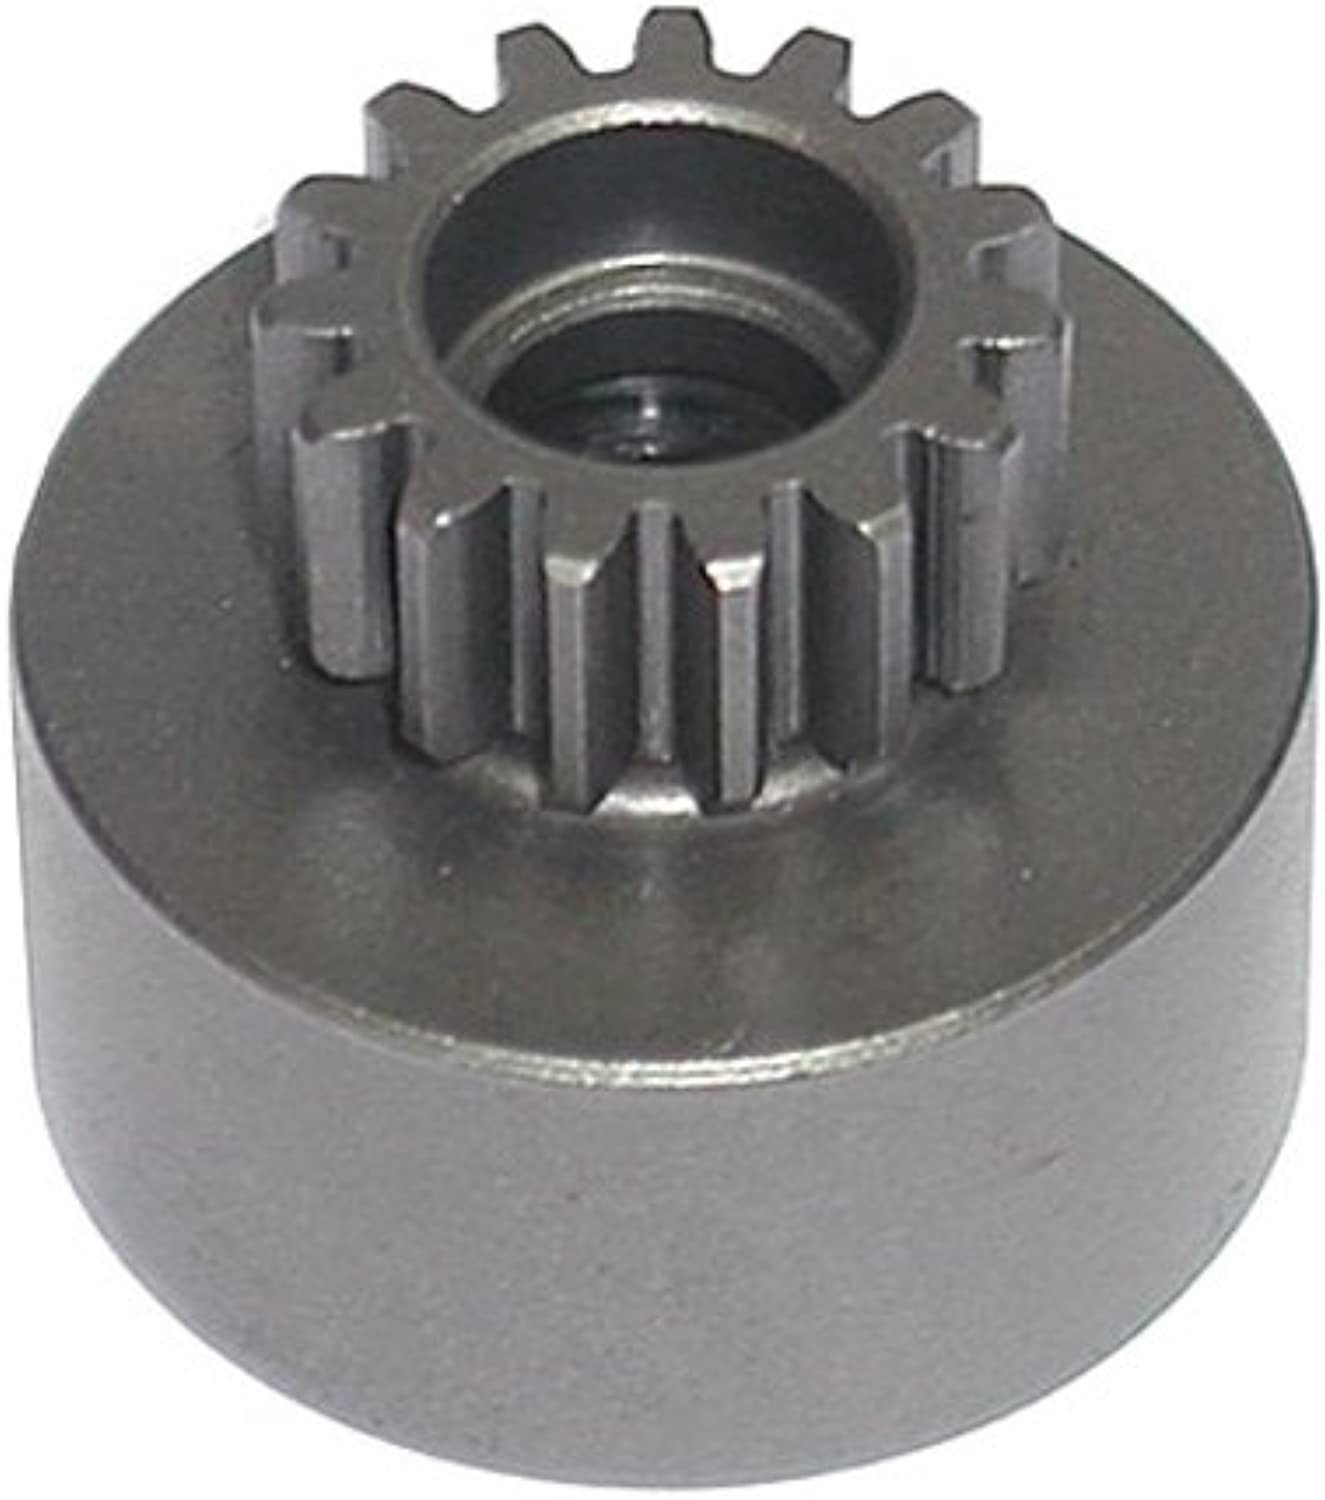 MGT CLUTCH BELL, 15T (STD) [AS25155]